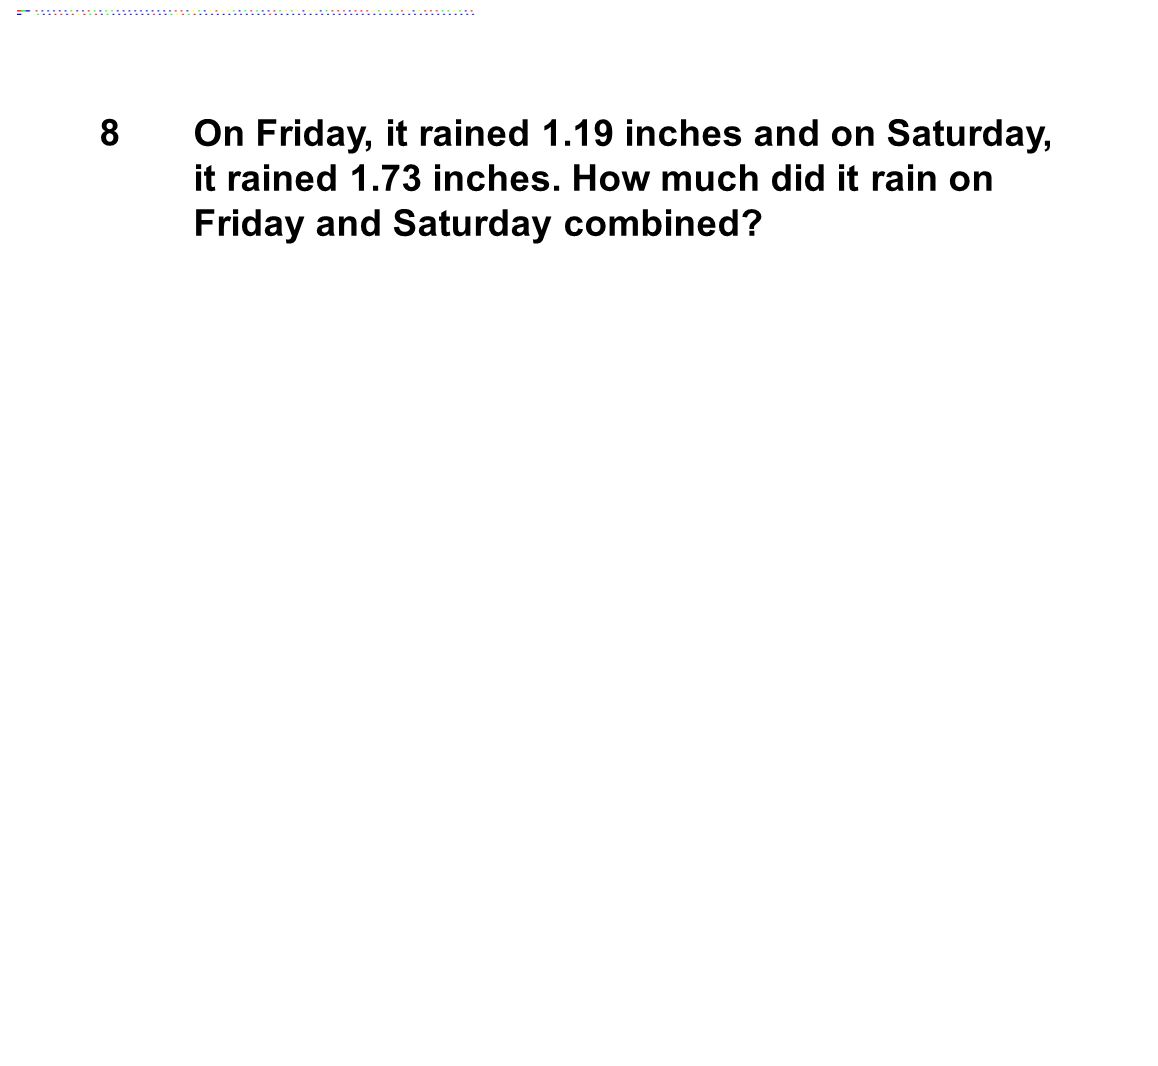 8 On Friday, it rained 1.19 inches and on Saturday, it rained 1.73 inches.